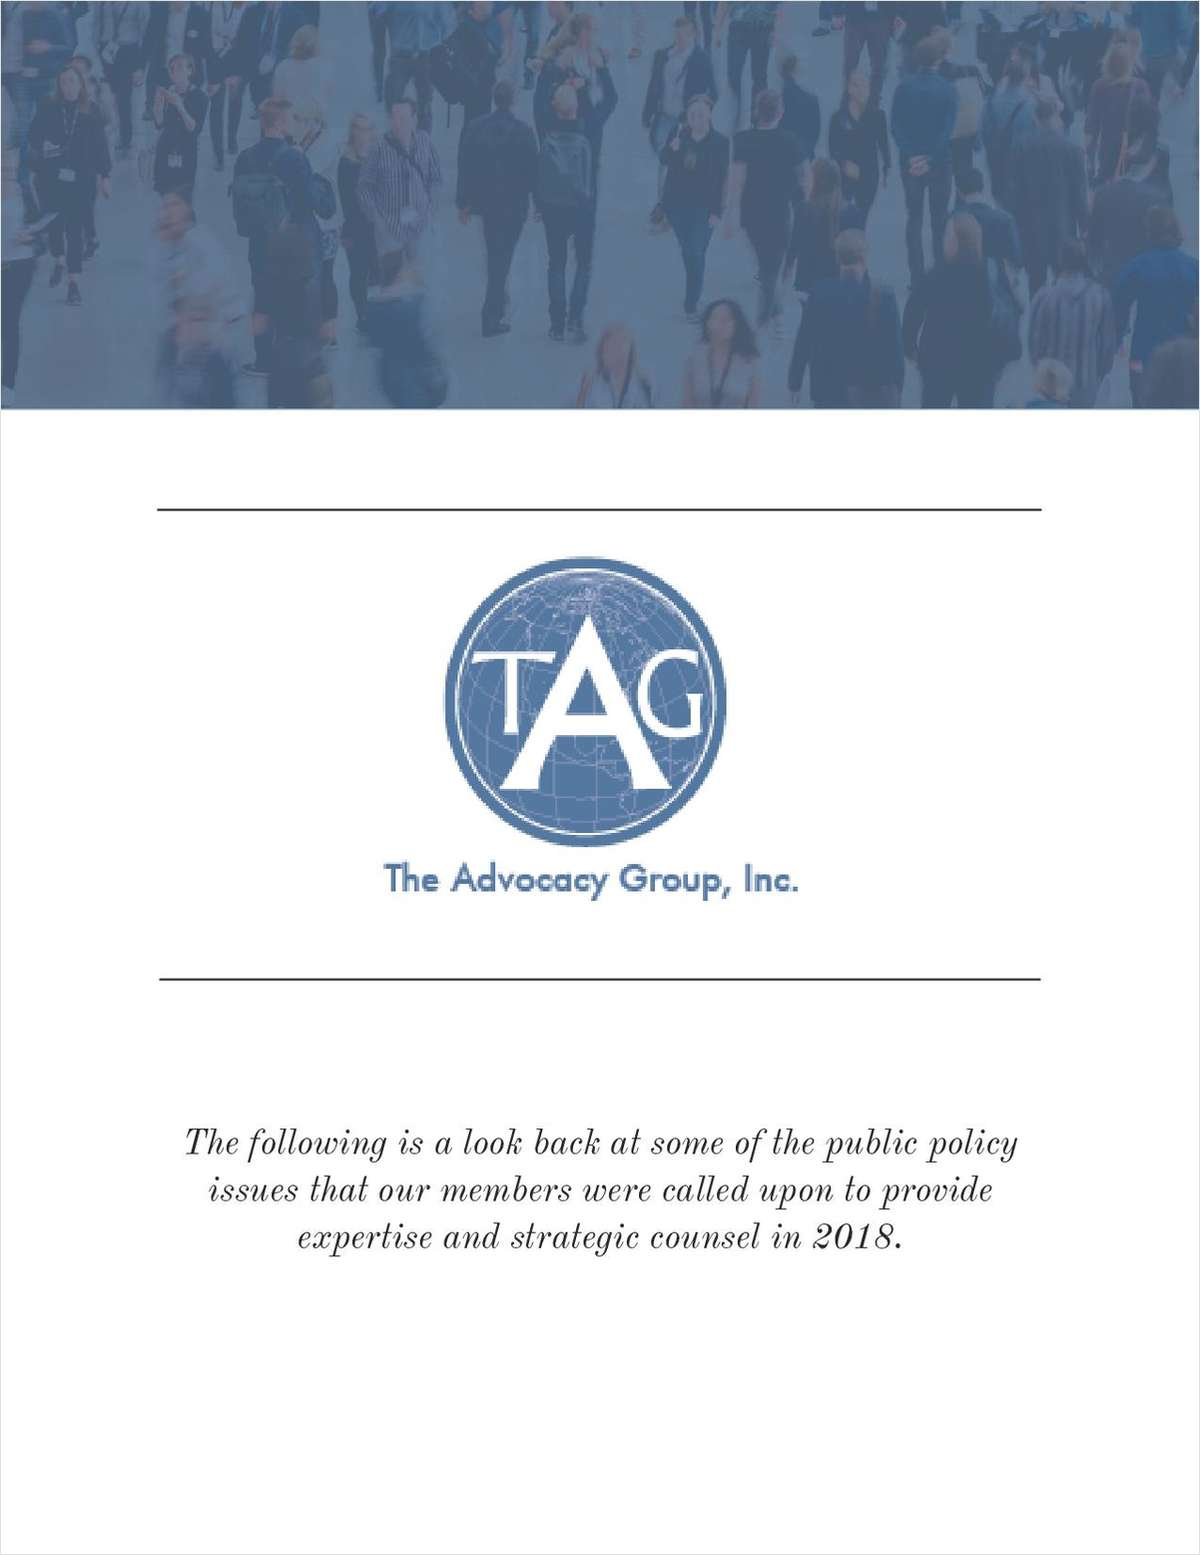 Advocating the Right Way: Resolving Public Policy Issues